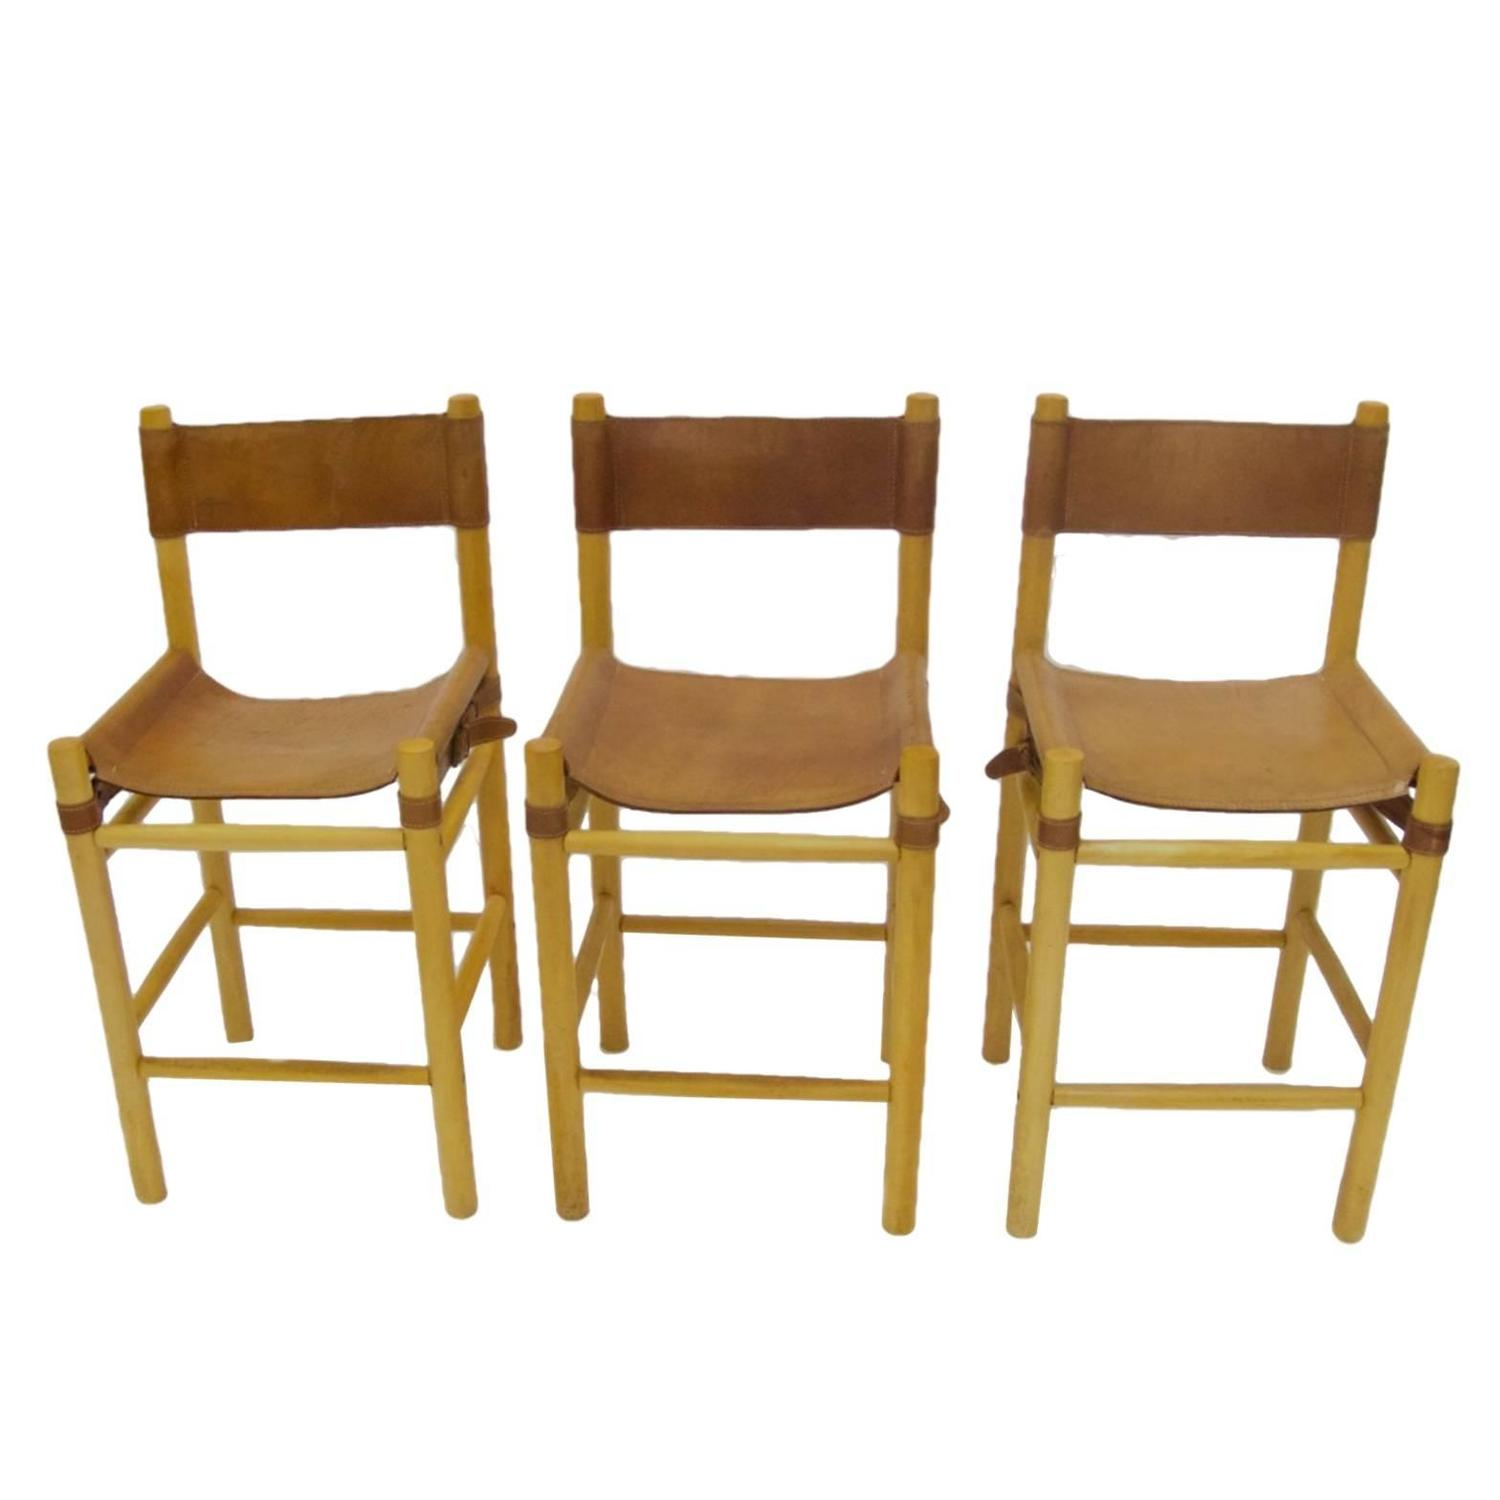 Leather With Buckles Safari Style Bar Stools In The Manner